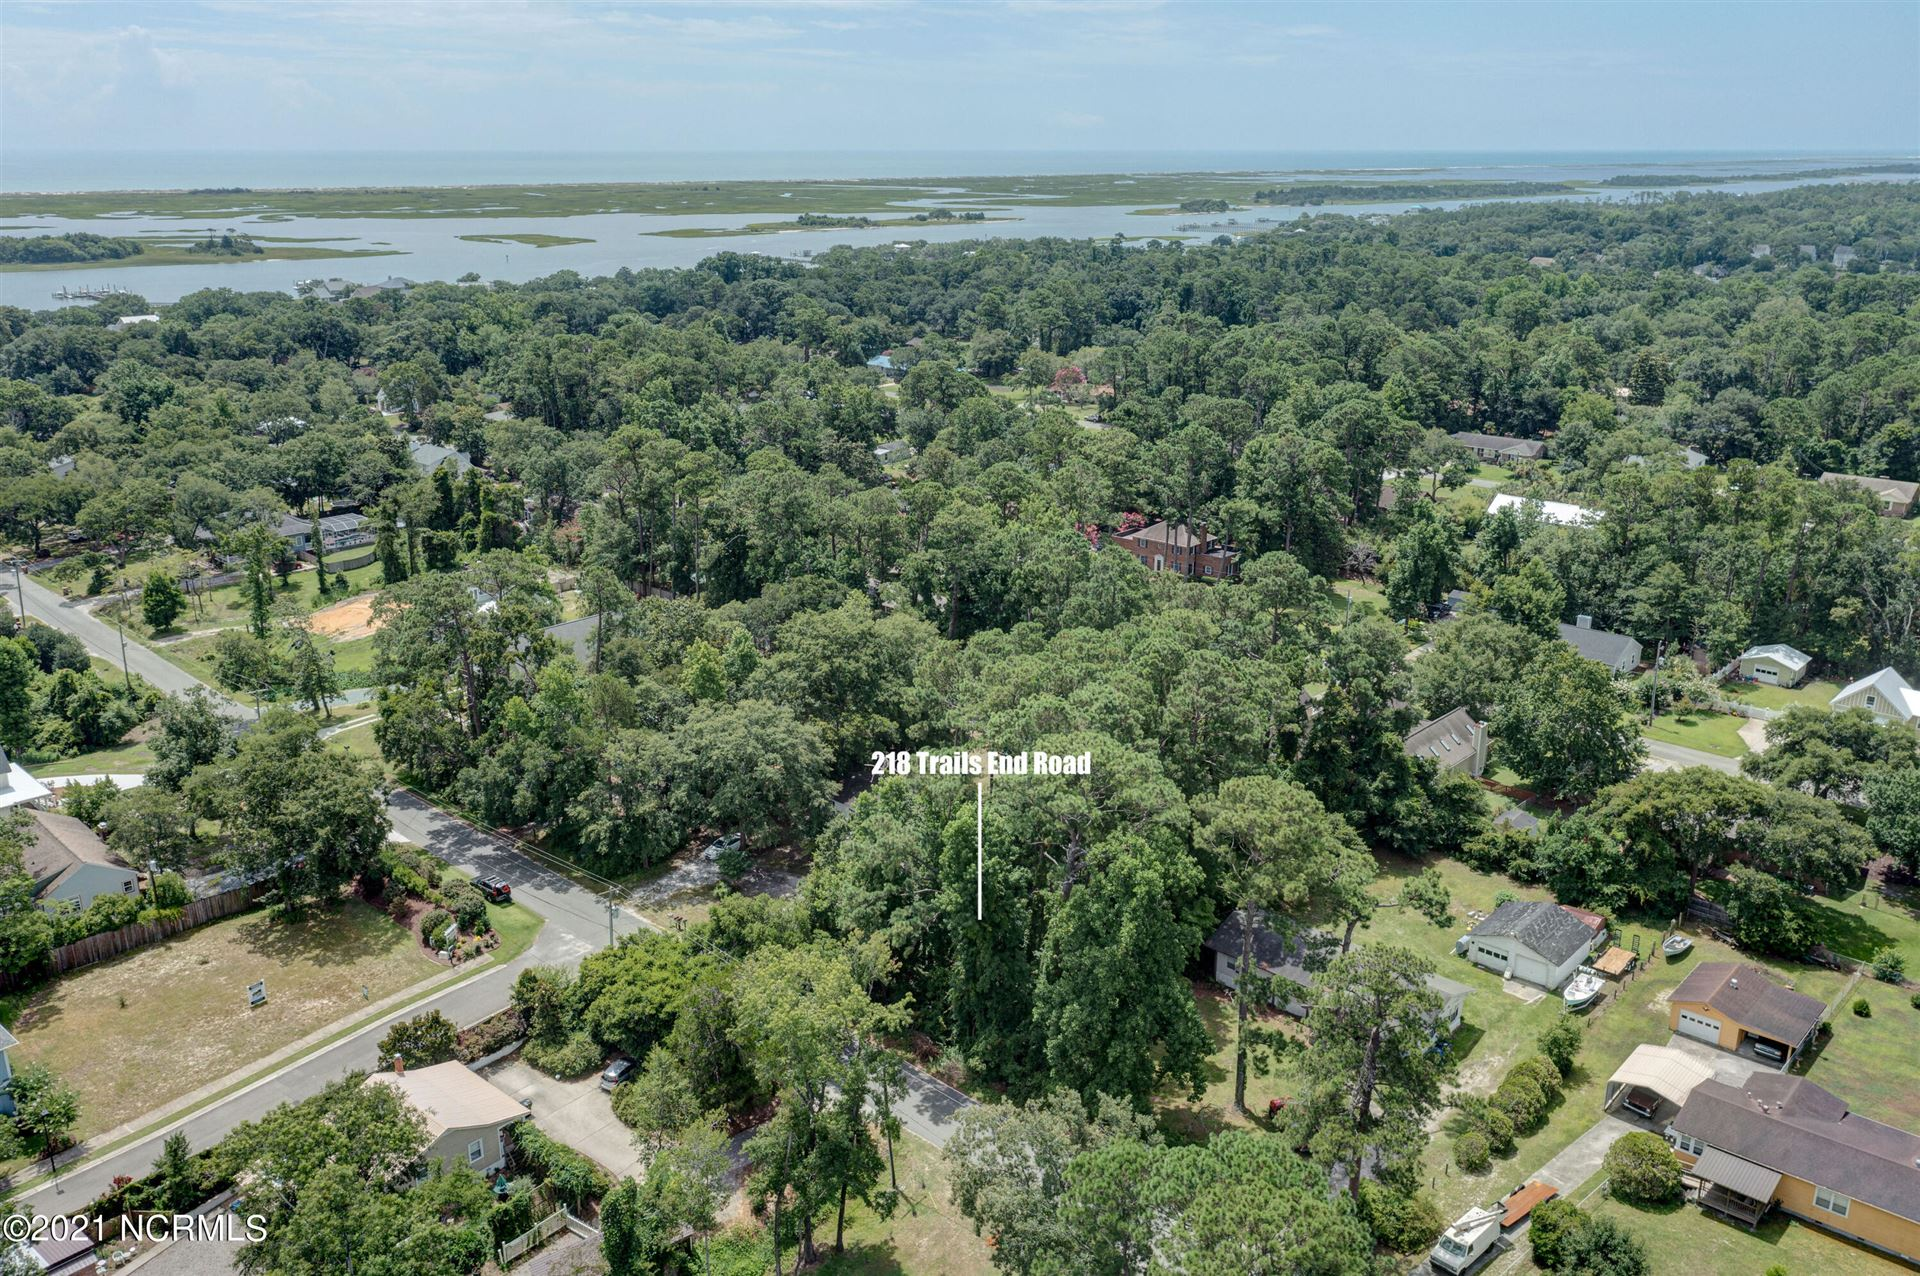 Photo of 218 Trails End Road, Wilmington, NC 28412 (MLS # 100291891)